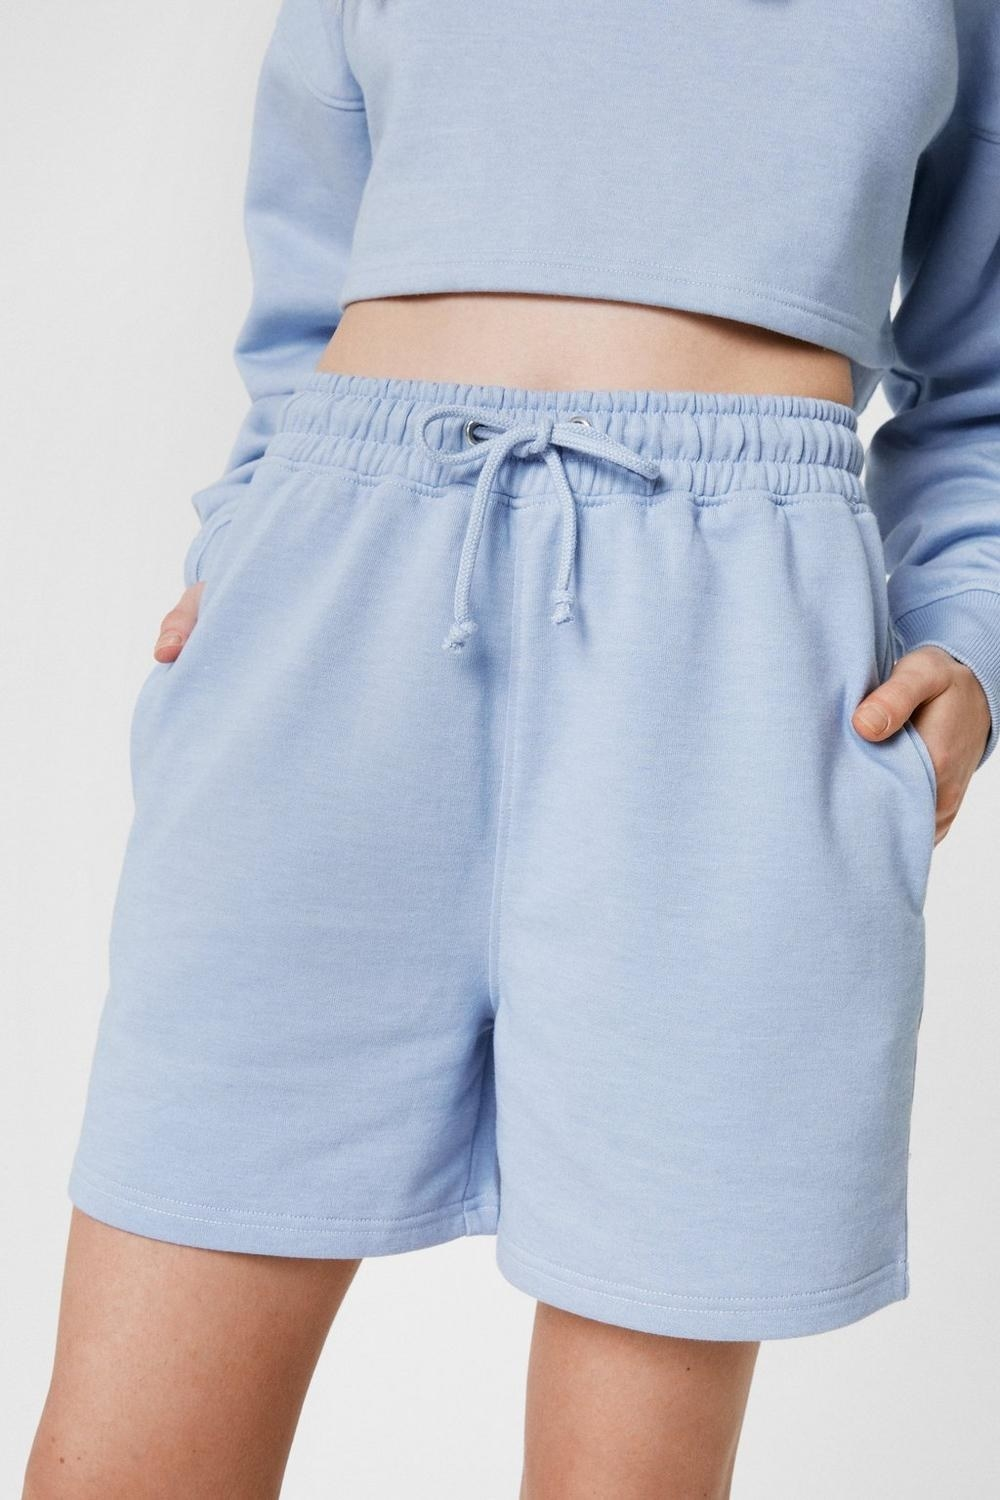 a pair of jogger shorts with pockets and a drawstring waist